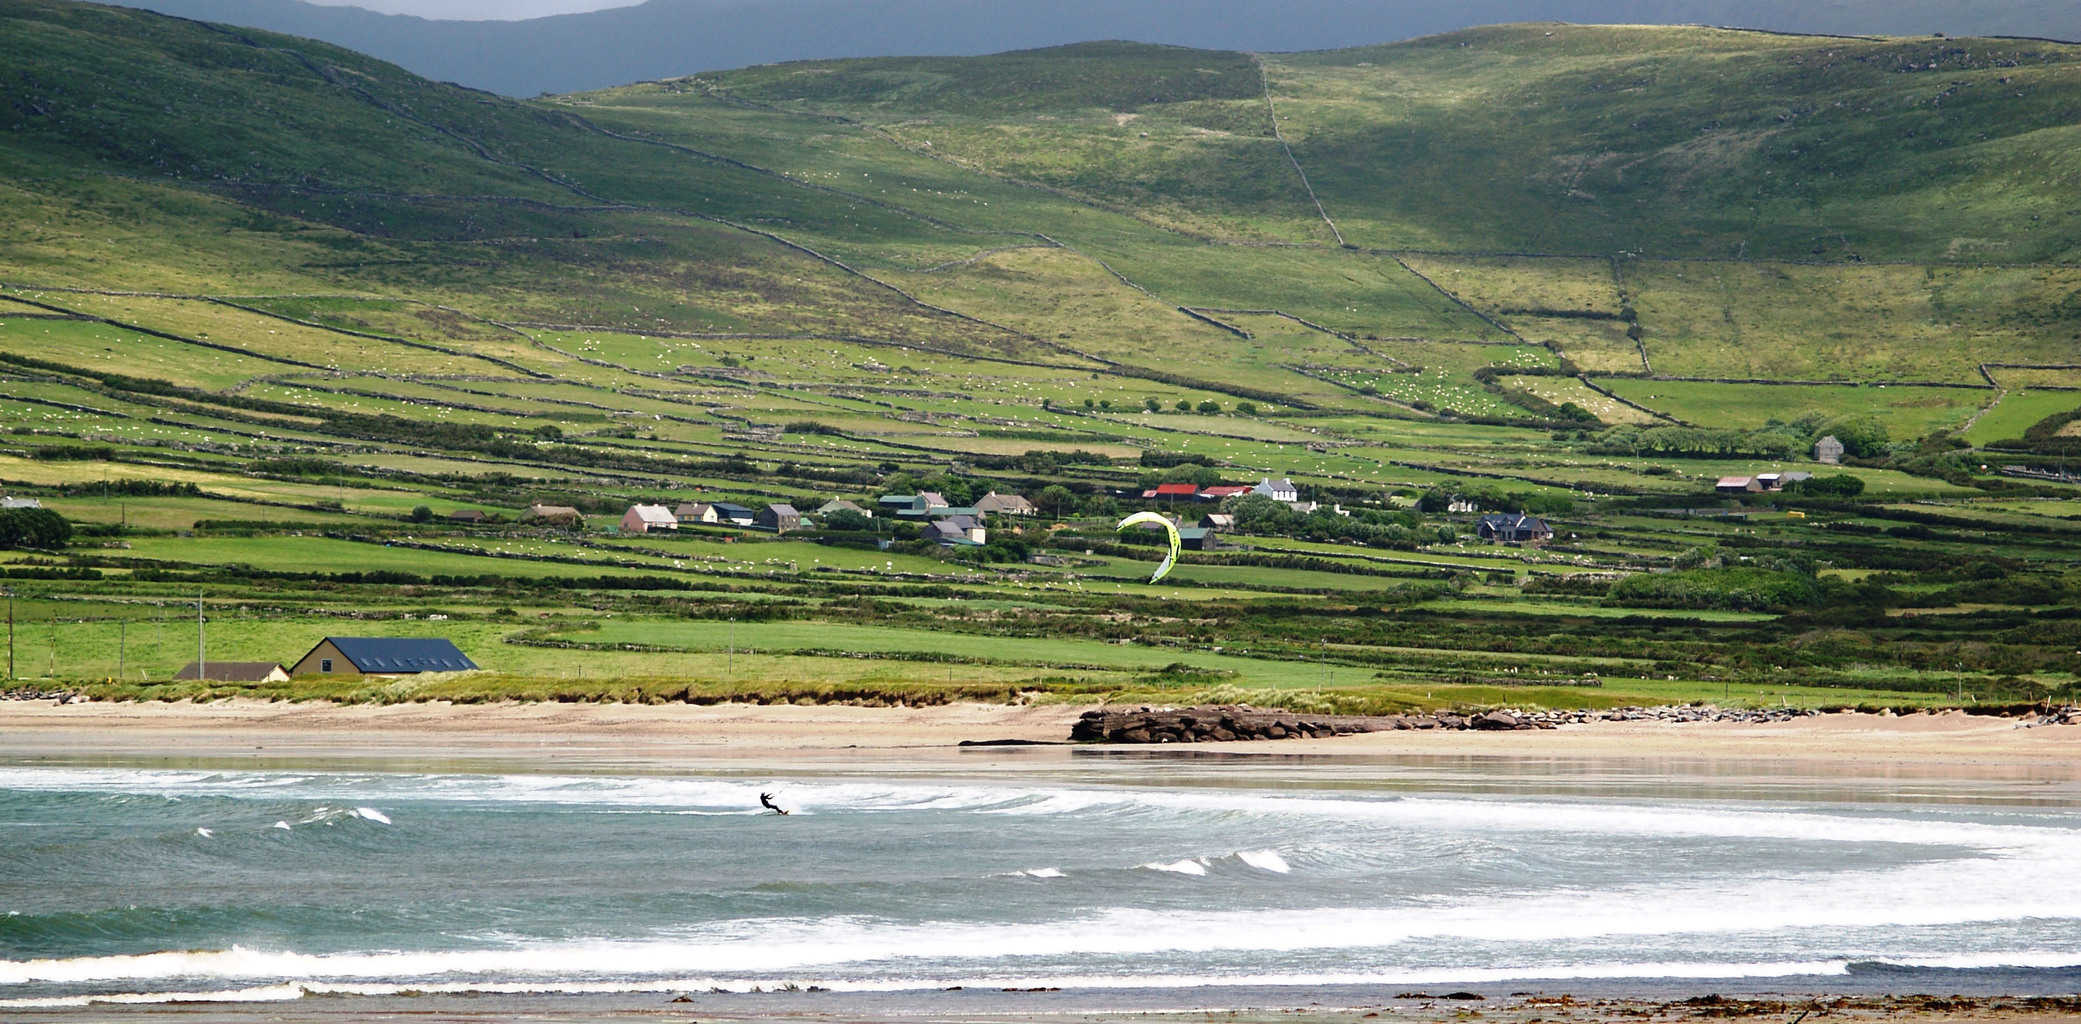 THE BEST KITE SURFING SPOTS IN IRELAND